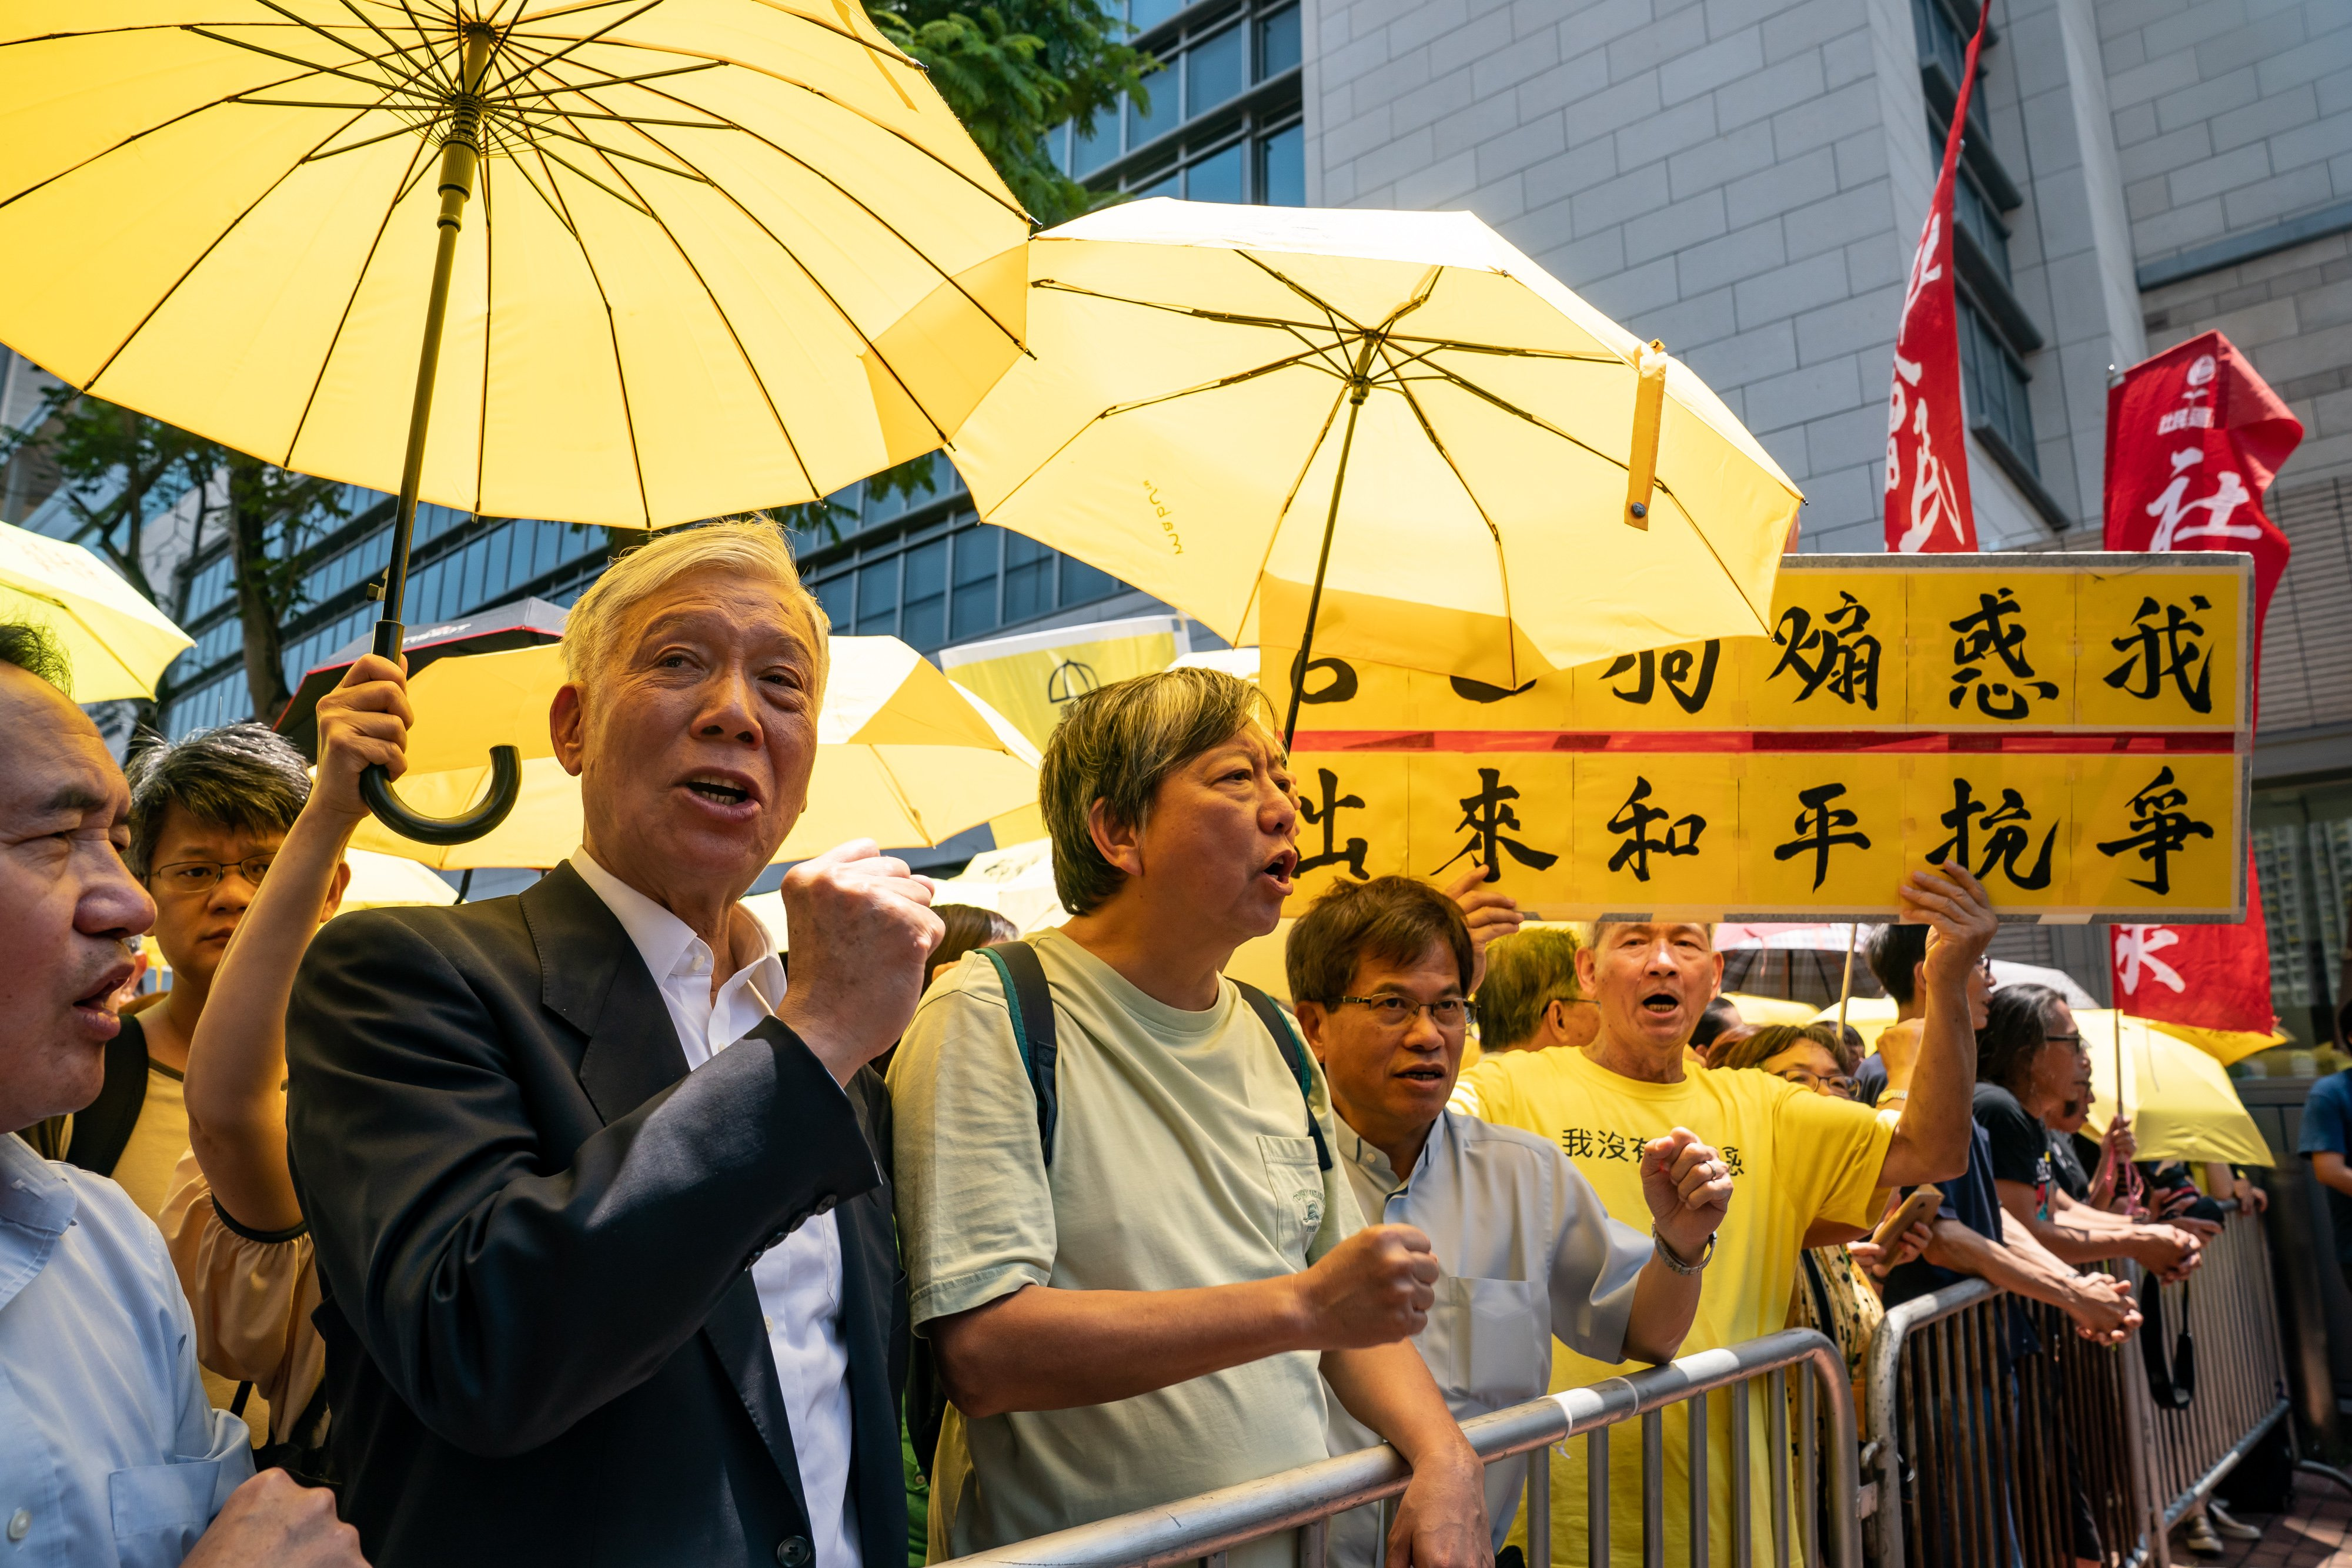 HONG KONG, APRIL 24: Occupy co-founder Reverend Chu Yiu-ming and pro-democracy activist Lee Cheuk-yan shout slogans as they wait for the prison car outside of the West Kowloon Courts Building after the sentencing of the 'Occupy 9' on April 24, 2018 in Hong Kong, Hong Kong. (Photo by Anthony Kwan/Getty Images)